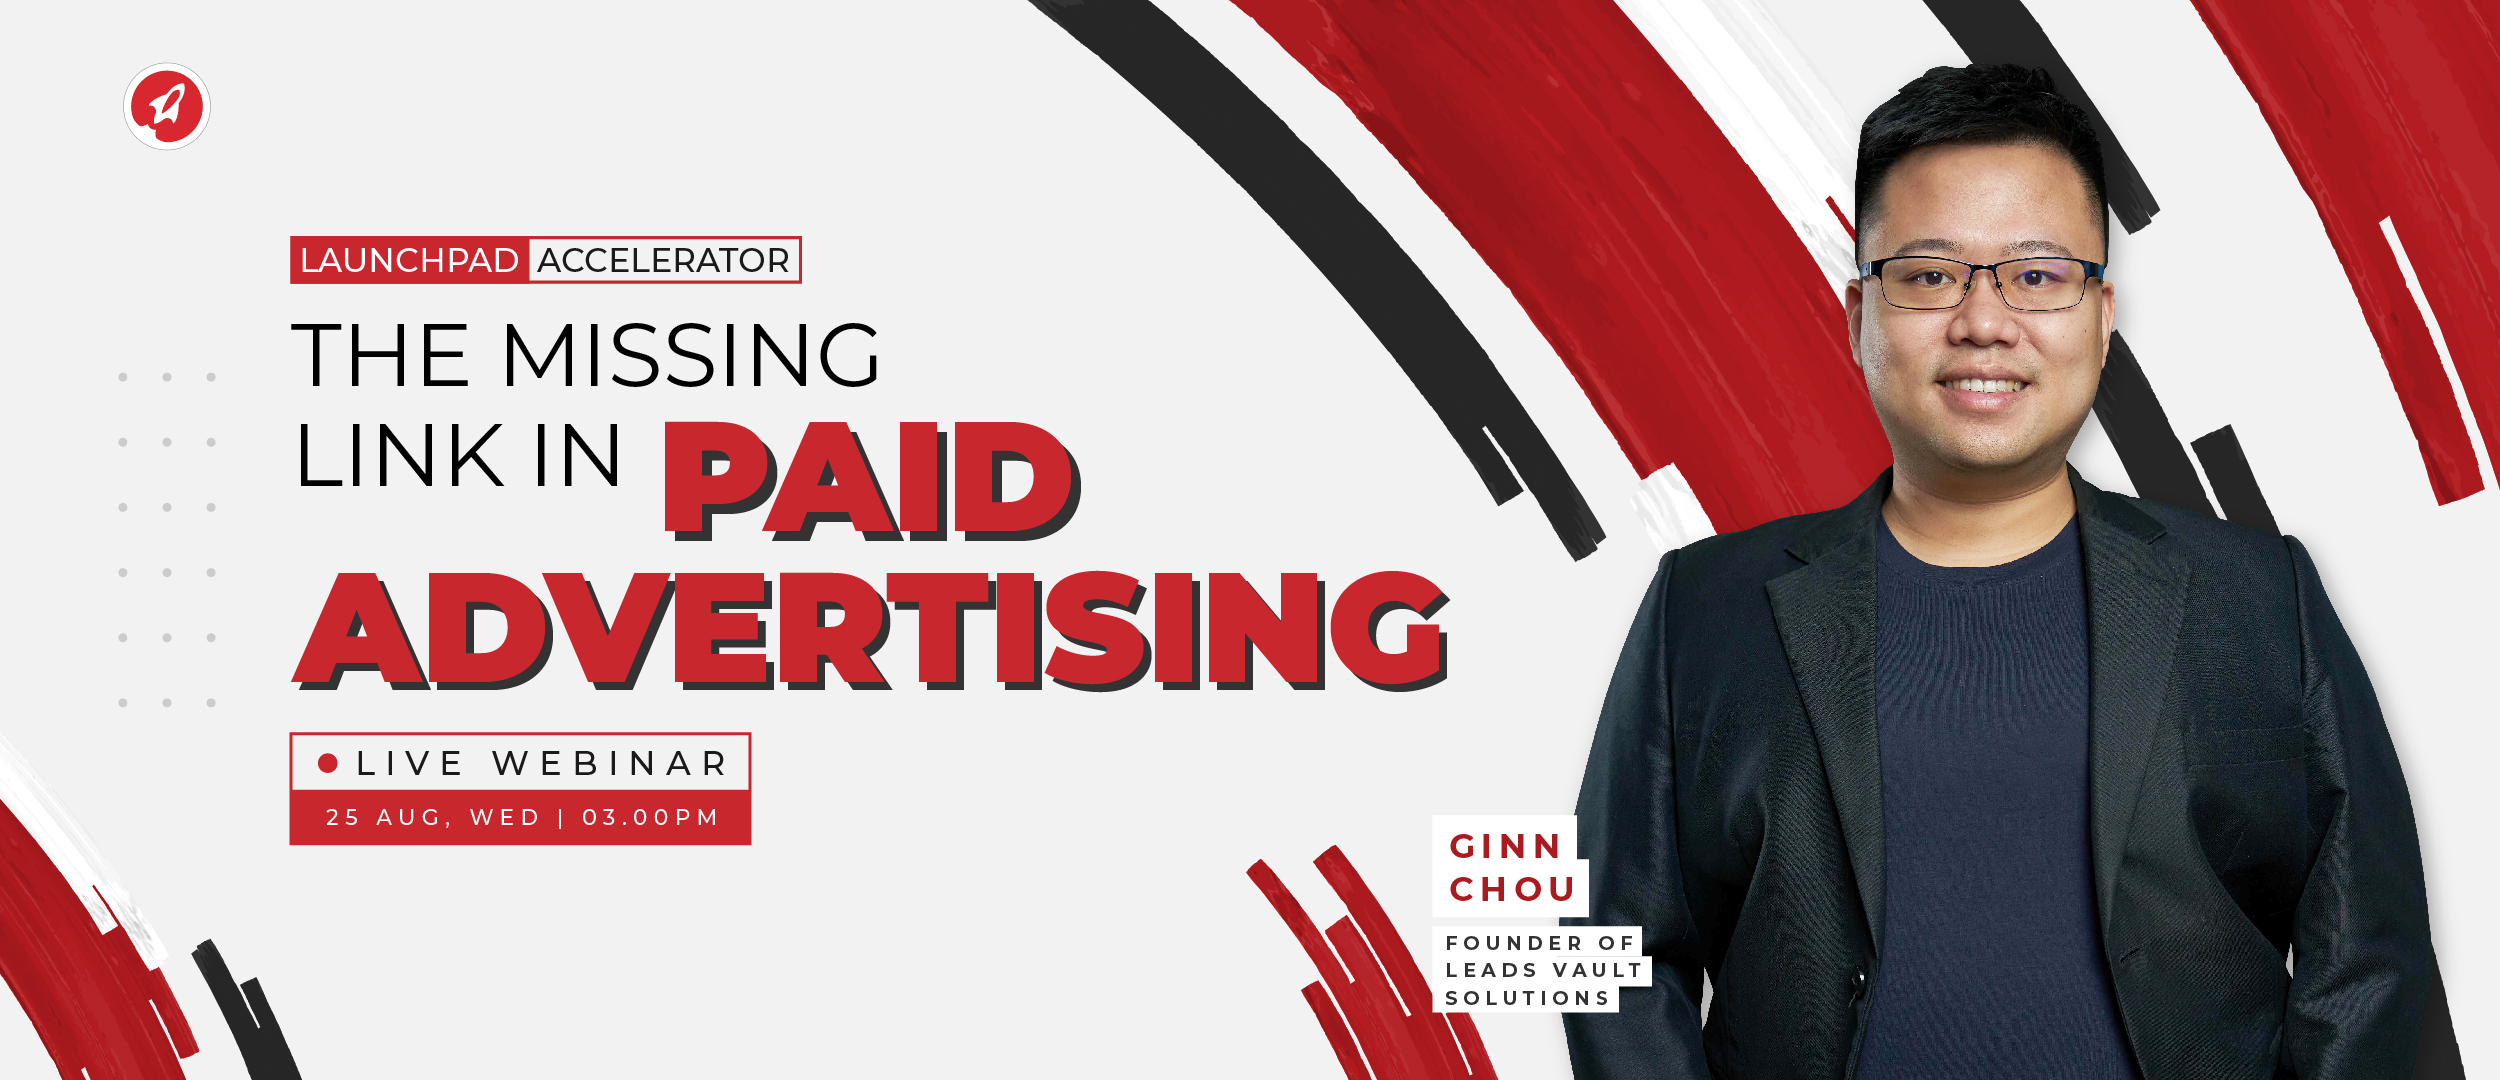 [LAS] The Missing Link In Paid Advertising-Main Image-SM&Landing-03